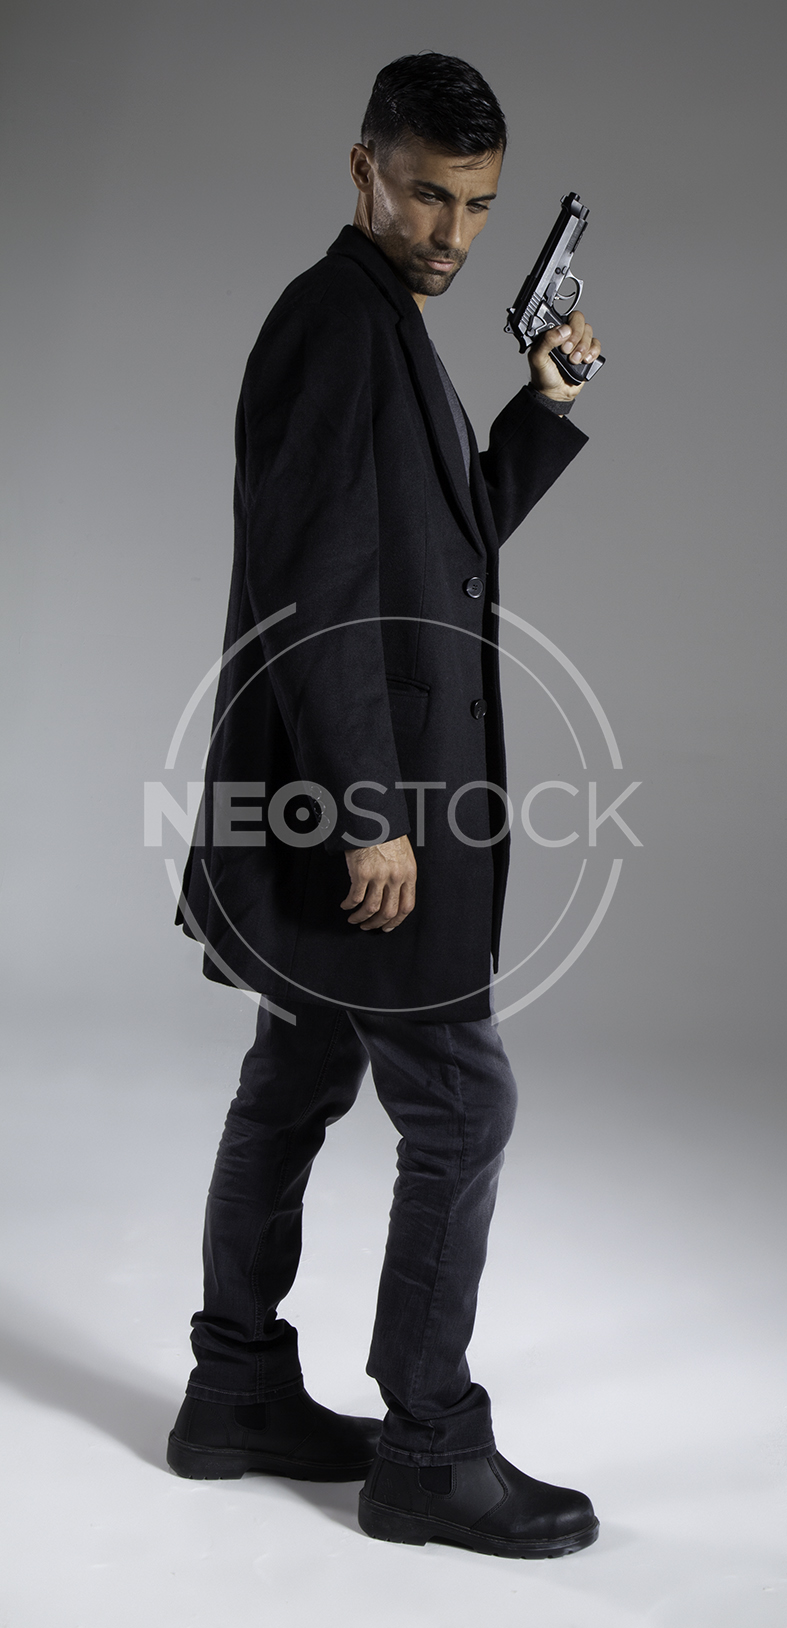 NeoStock - Marc Action Hero V - Stock Photography